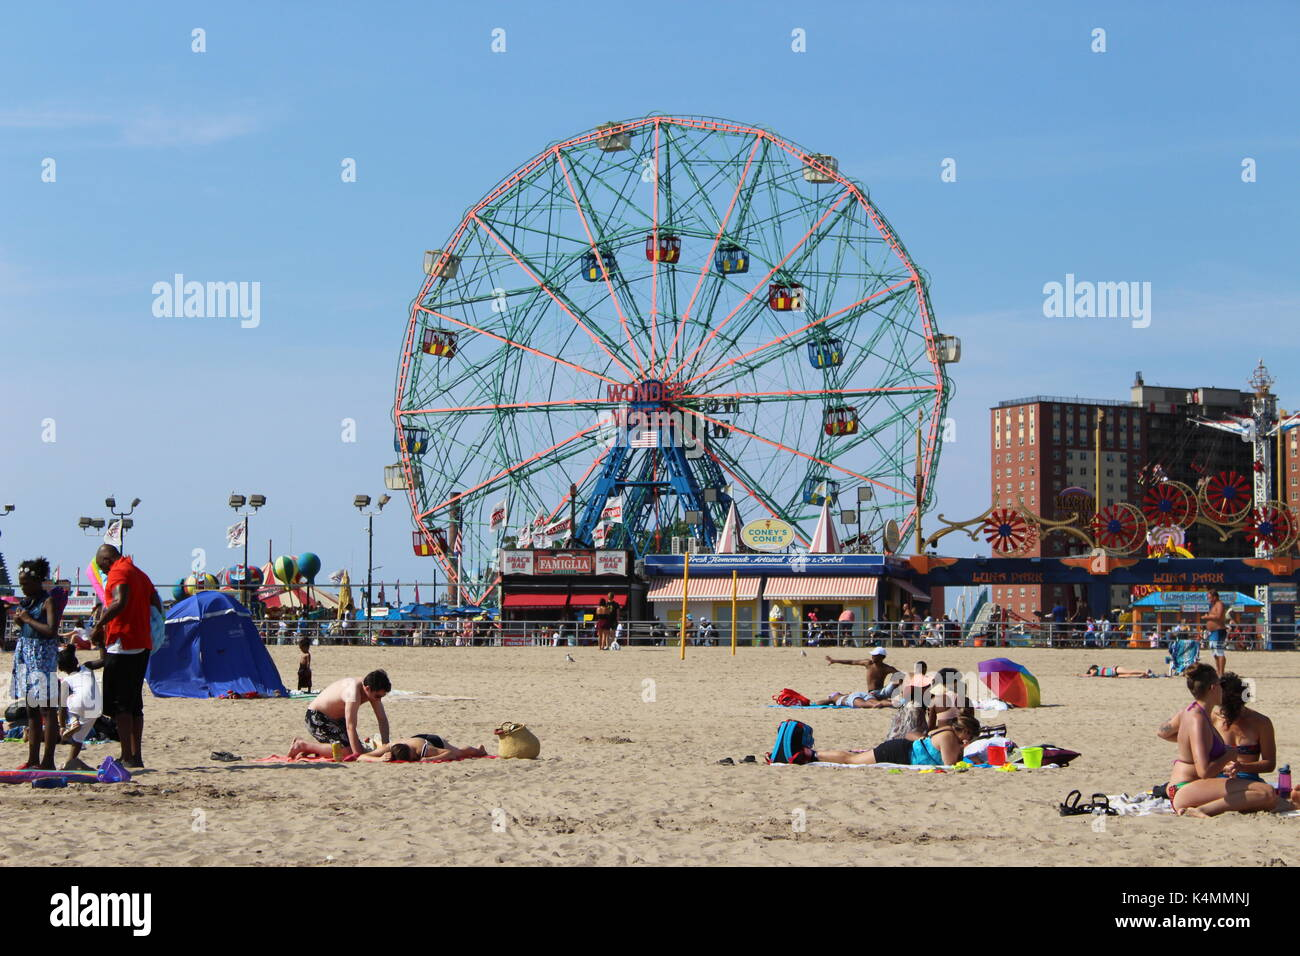 On the beach at Coney Island - Stock Image